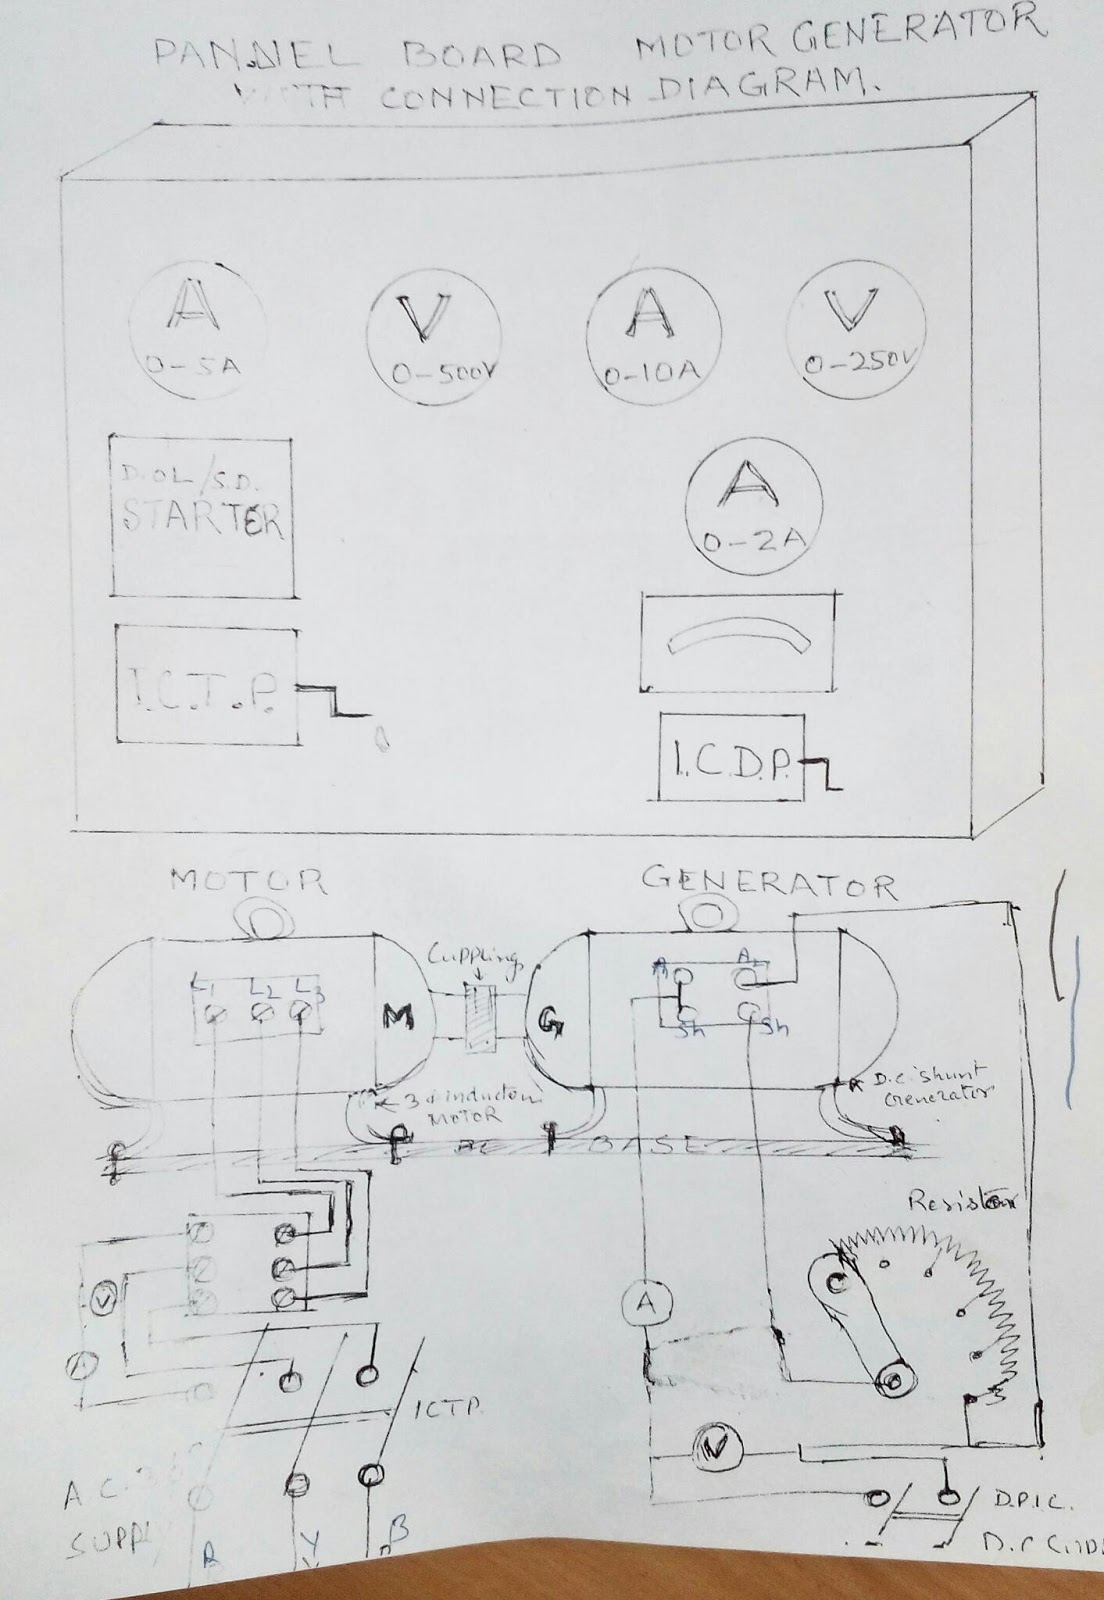 IMG_20160223_152851_045 motor generator circuit diagram mg set control panel cti generator control panel wiring diagram at bakdesigns.co